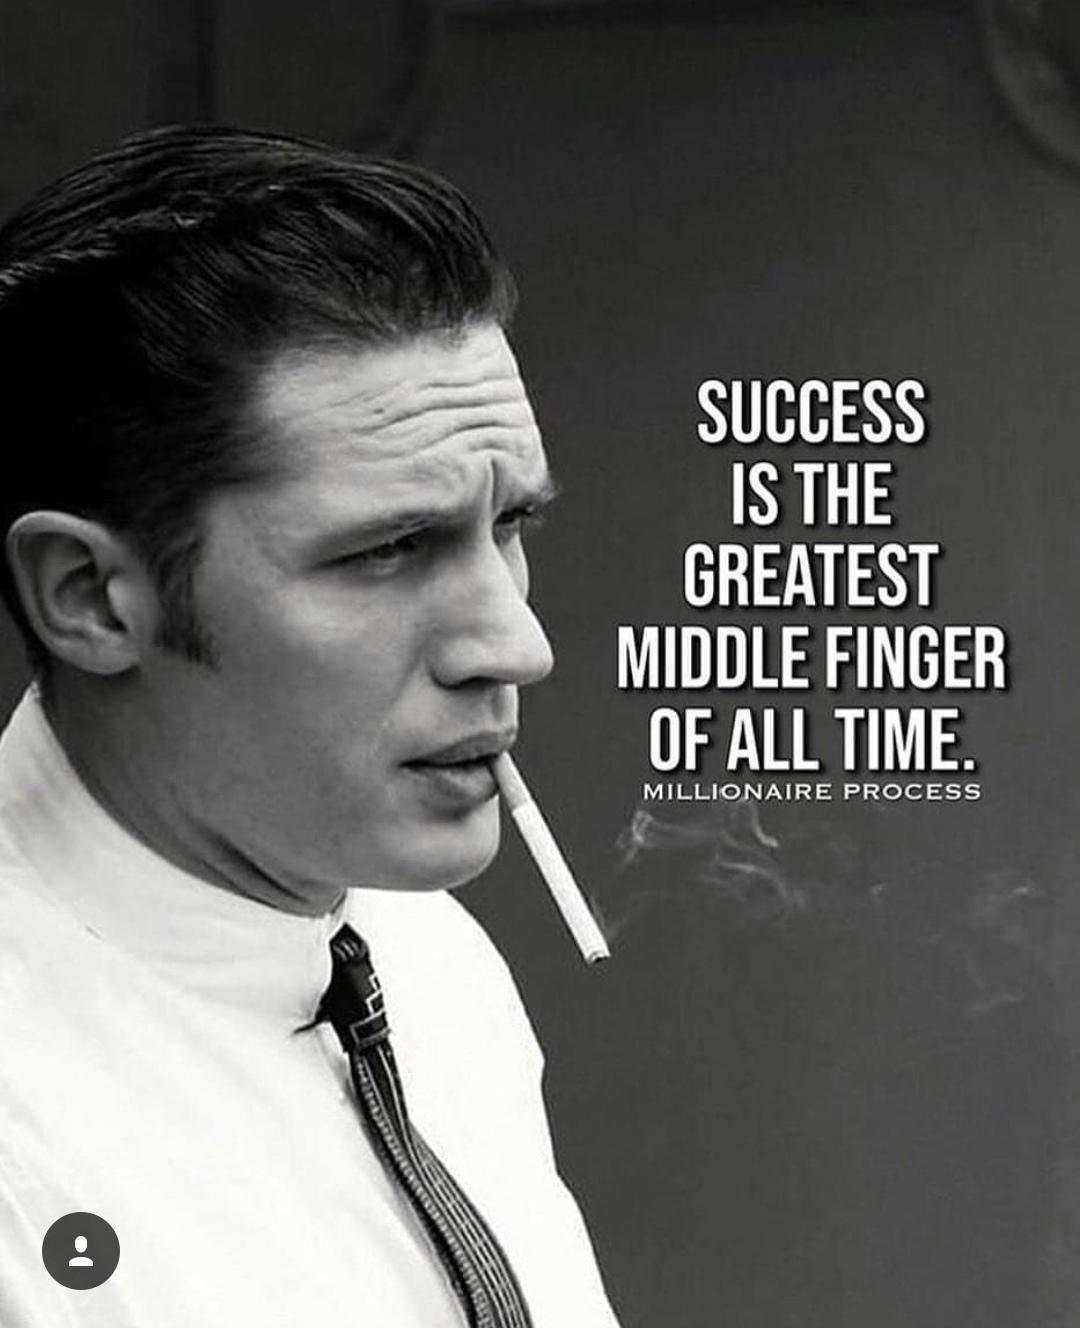 The Greatest Middle Finger